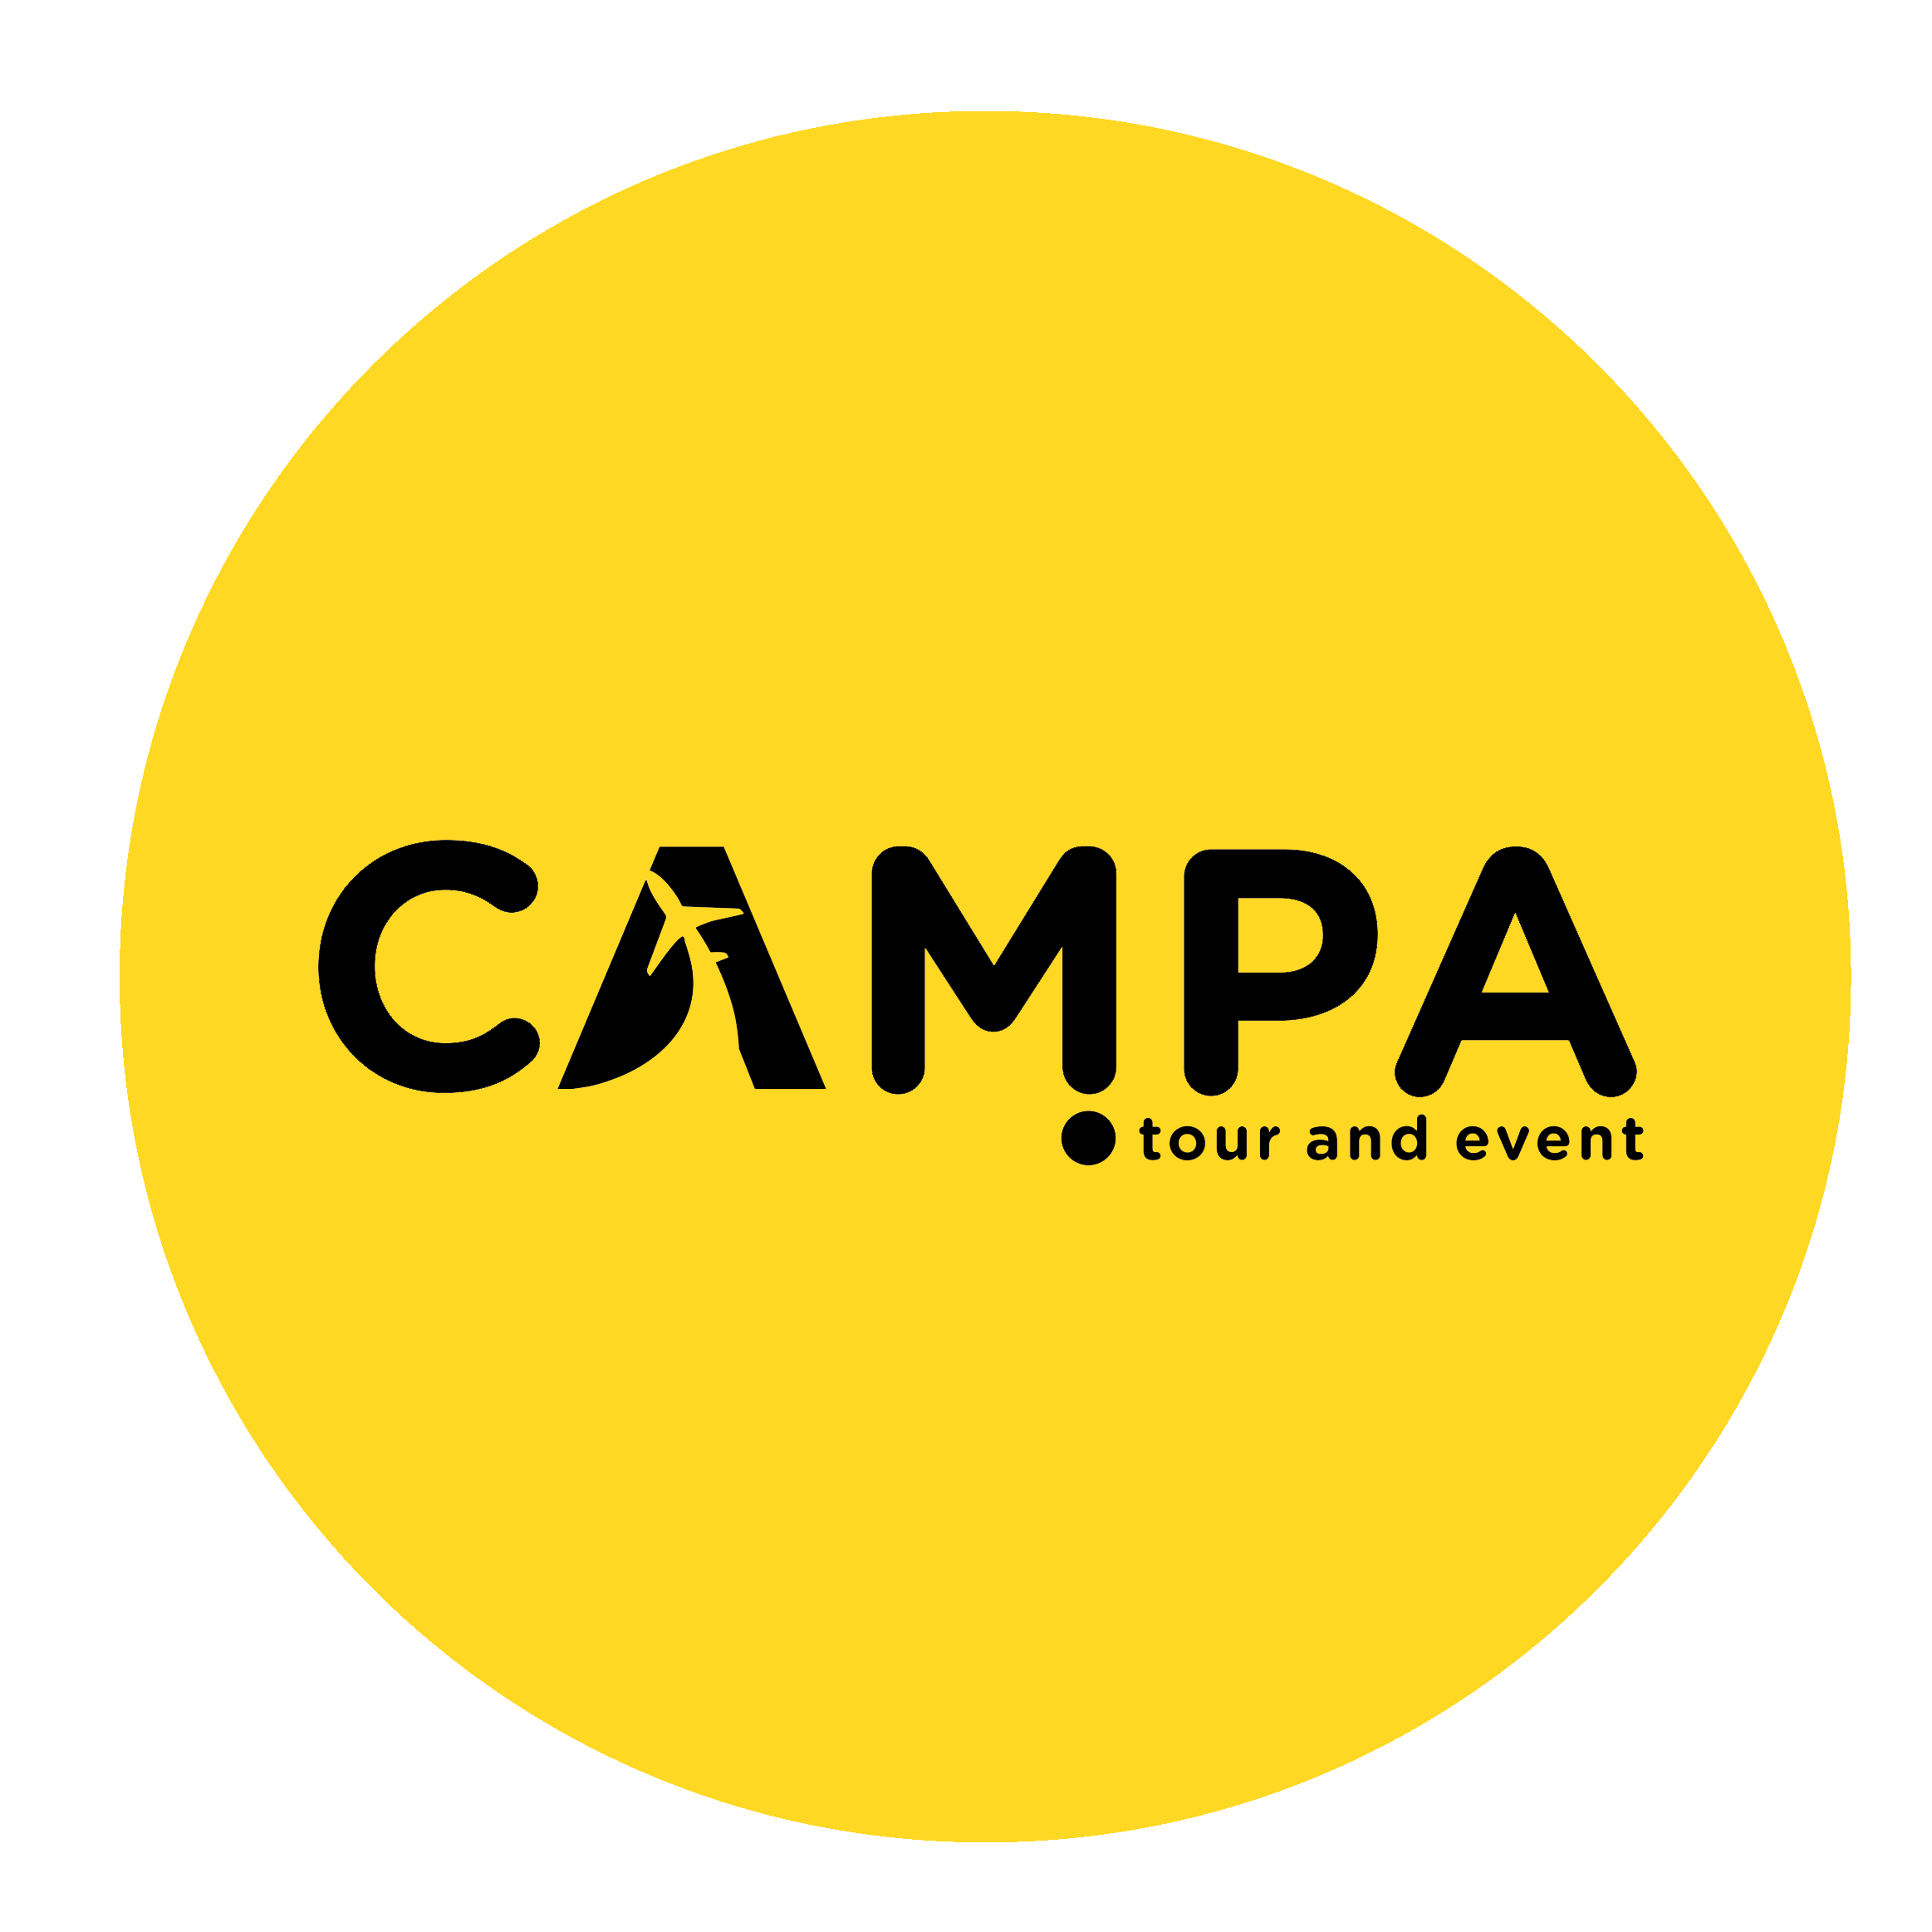 Campa Tour and Event